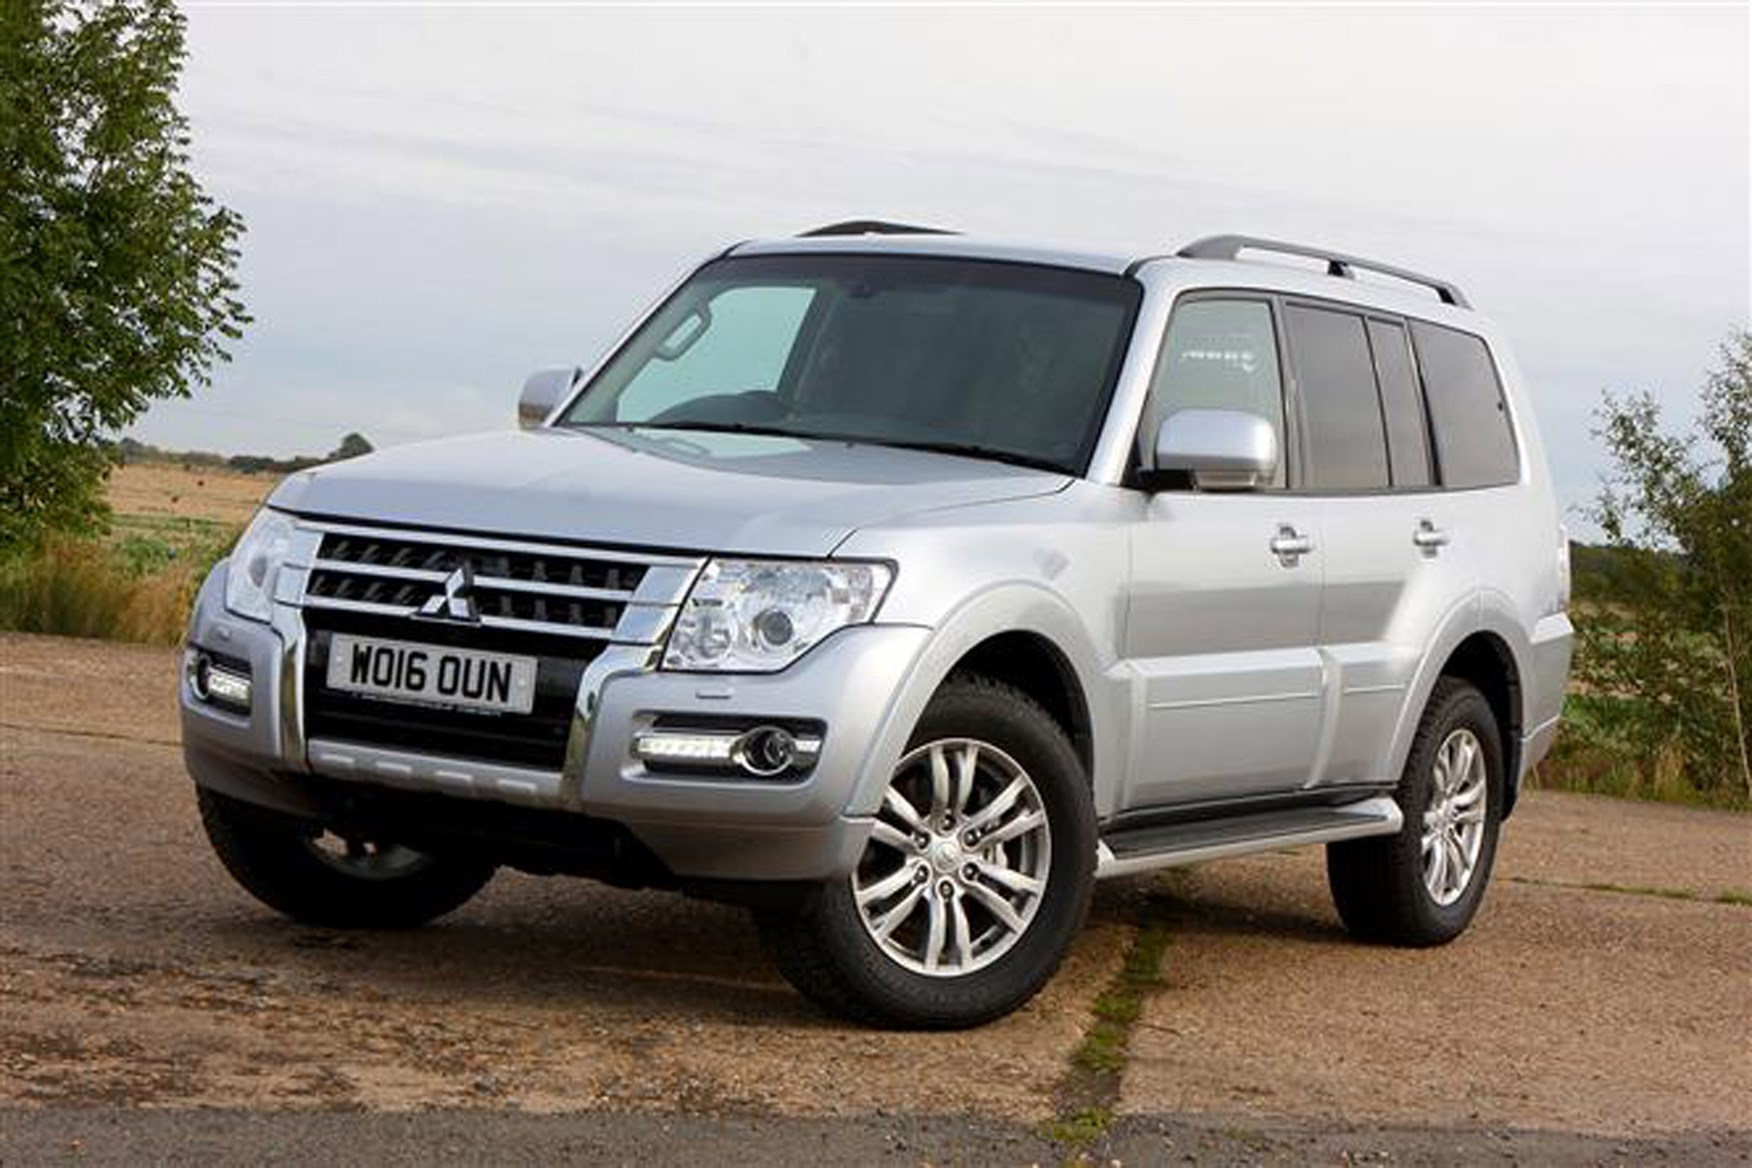 Mitsubishi Shogun review on Parkers Vans - exterior